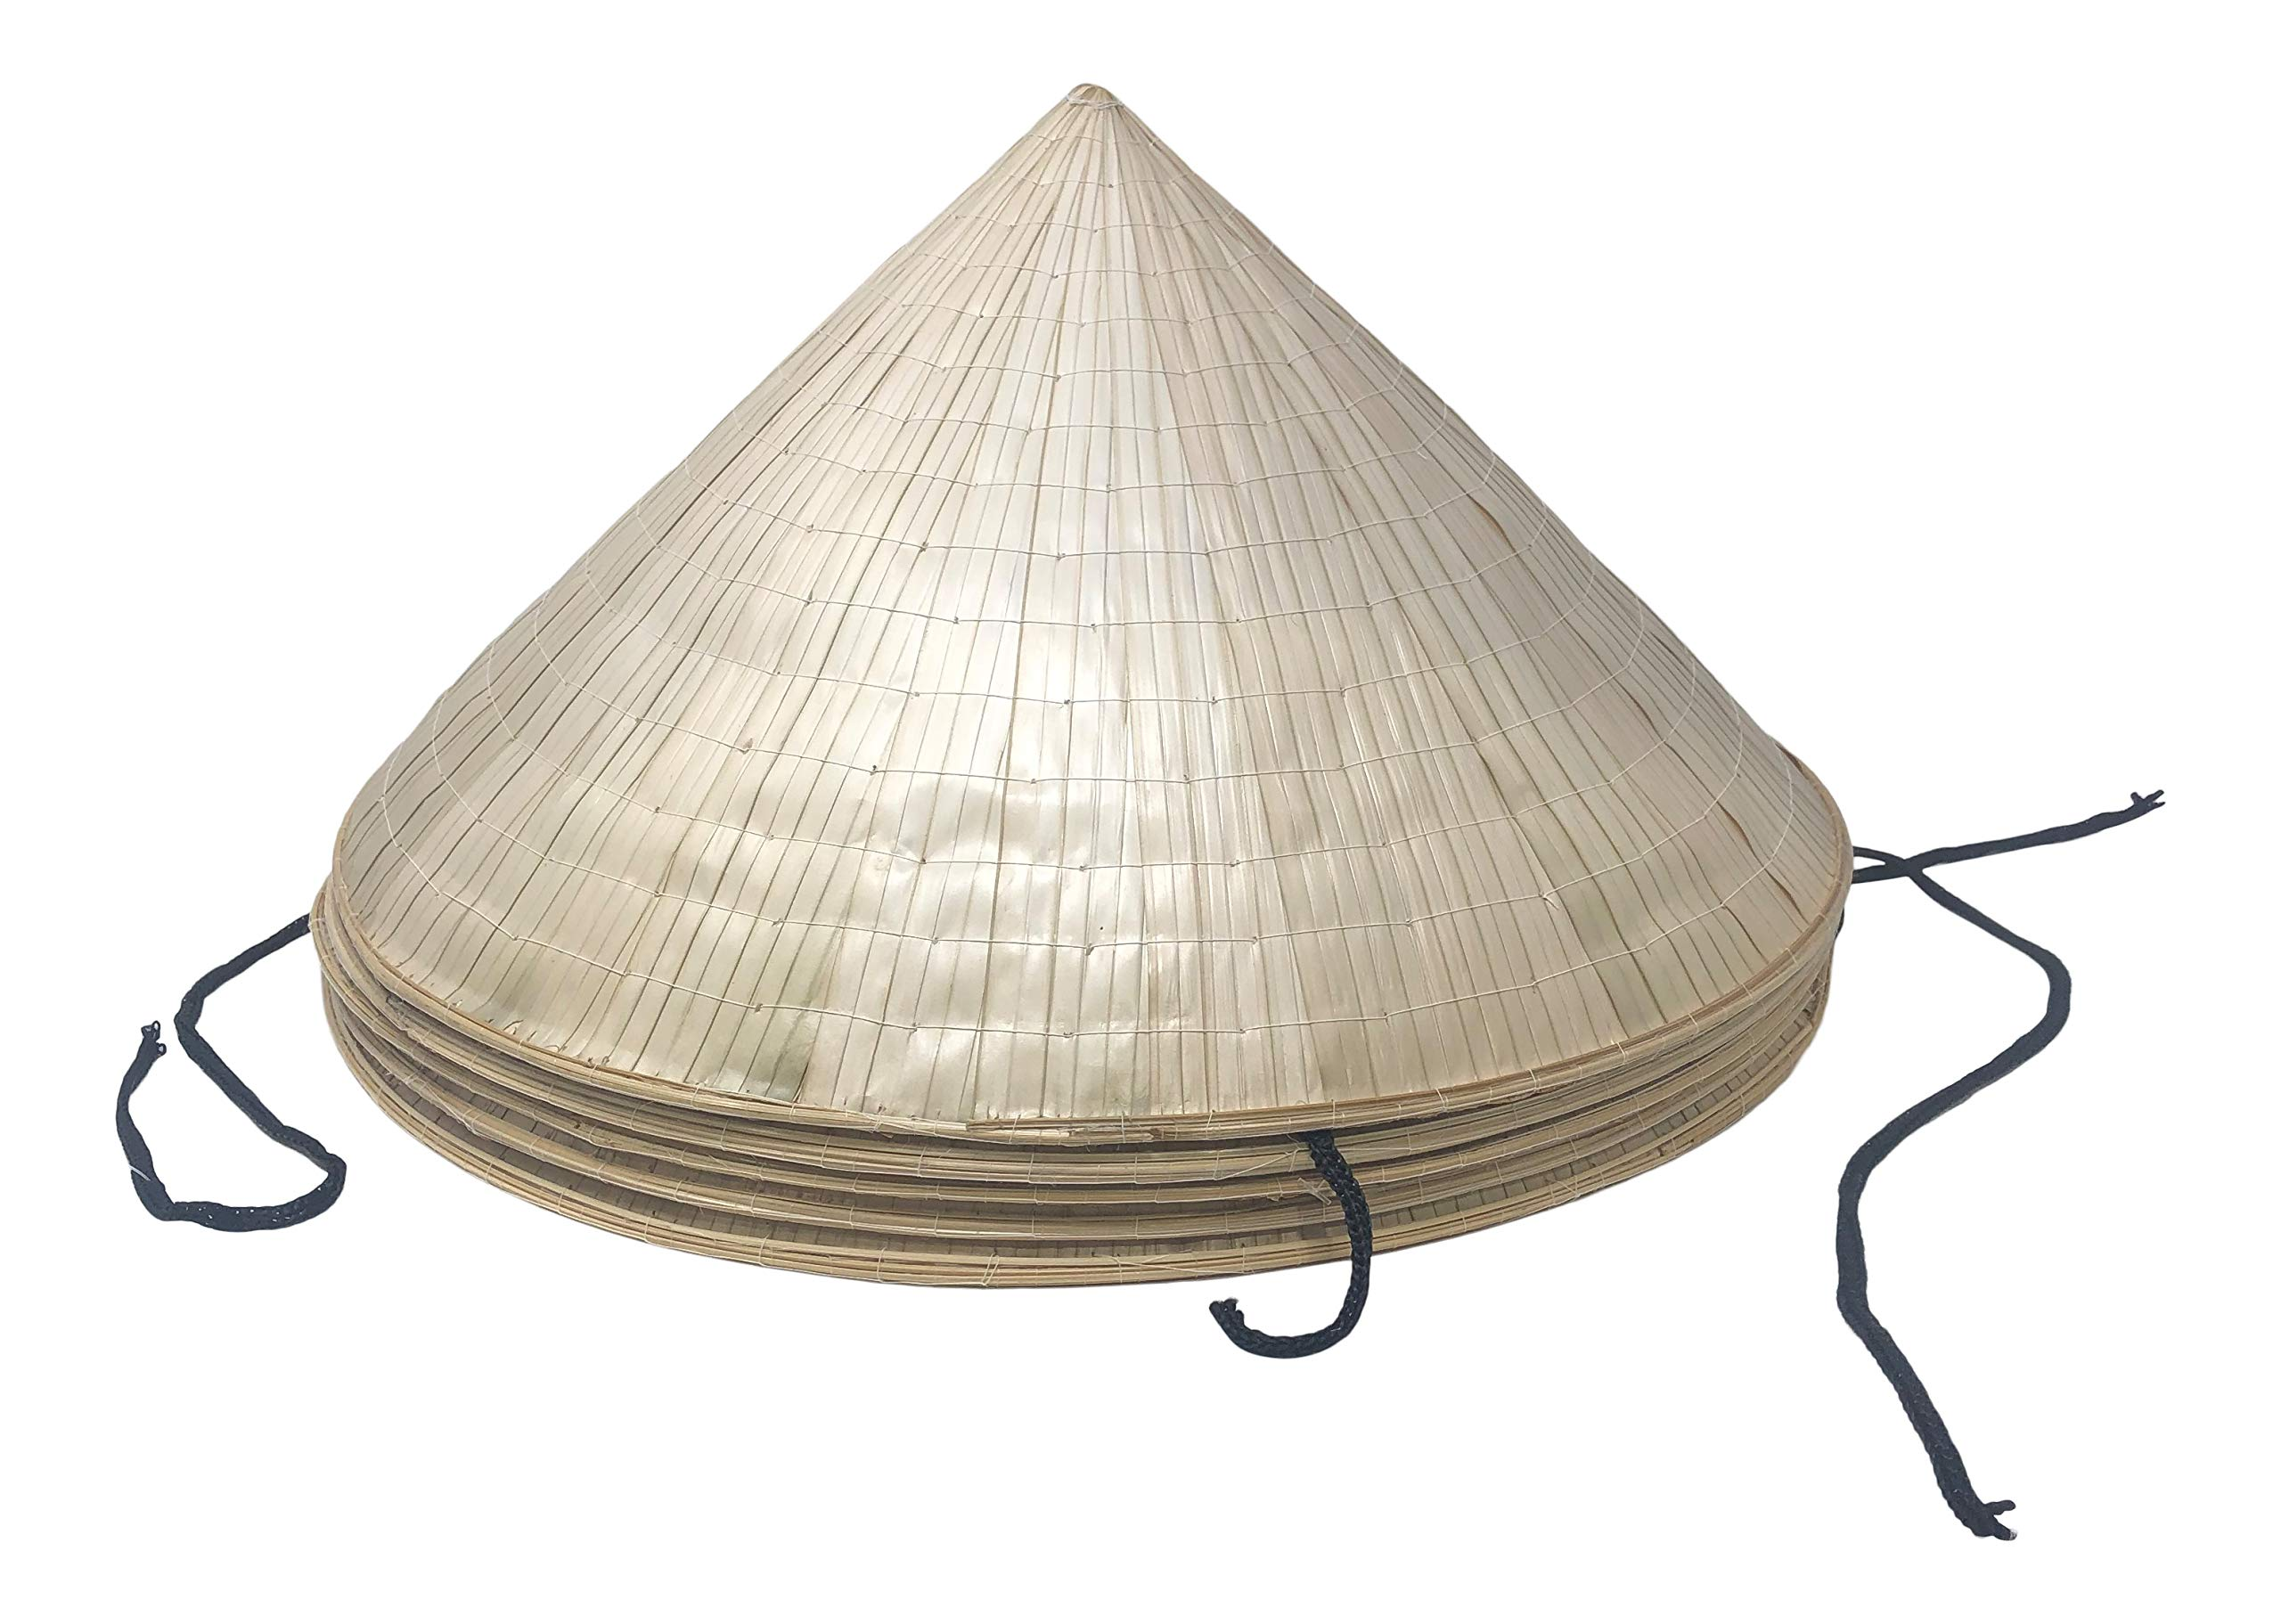 Chapeau Tribe Authentic Bamboo Deluxe Coolie Hat 5 Pack